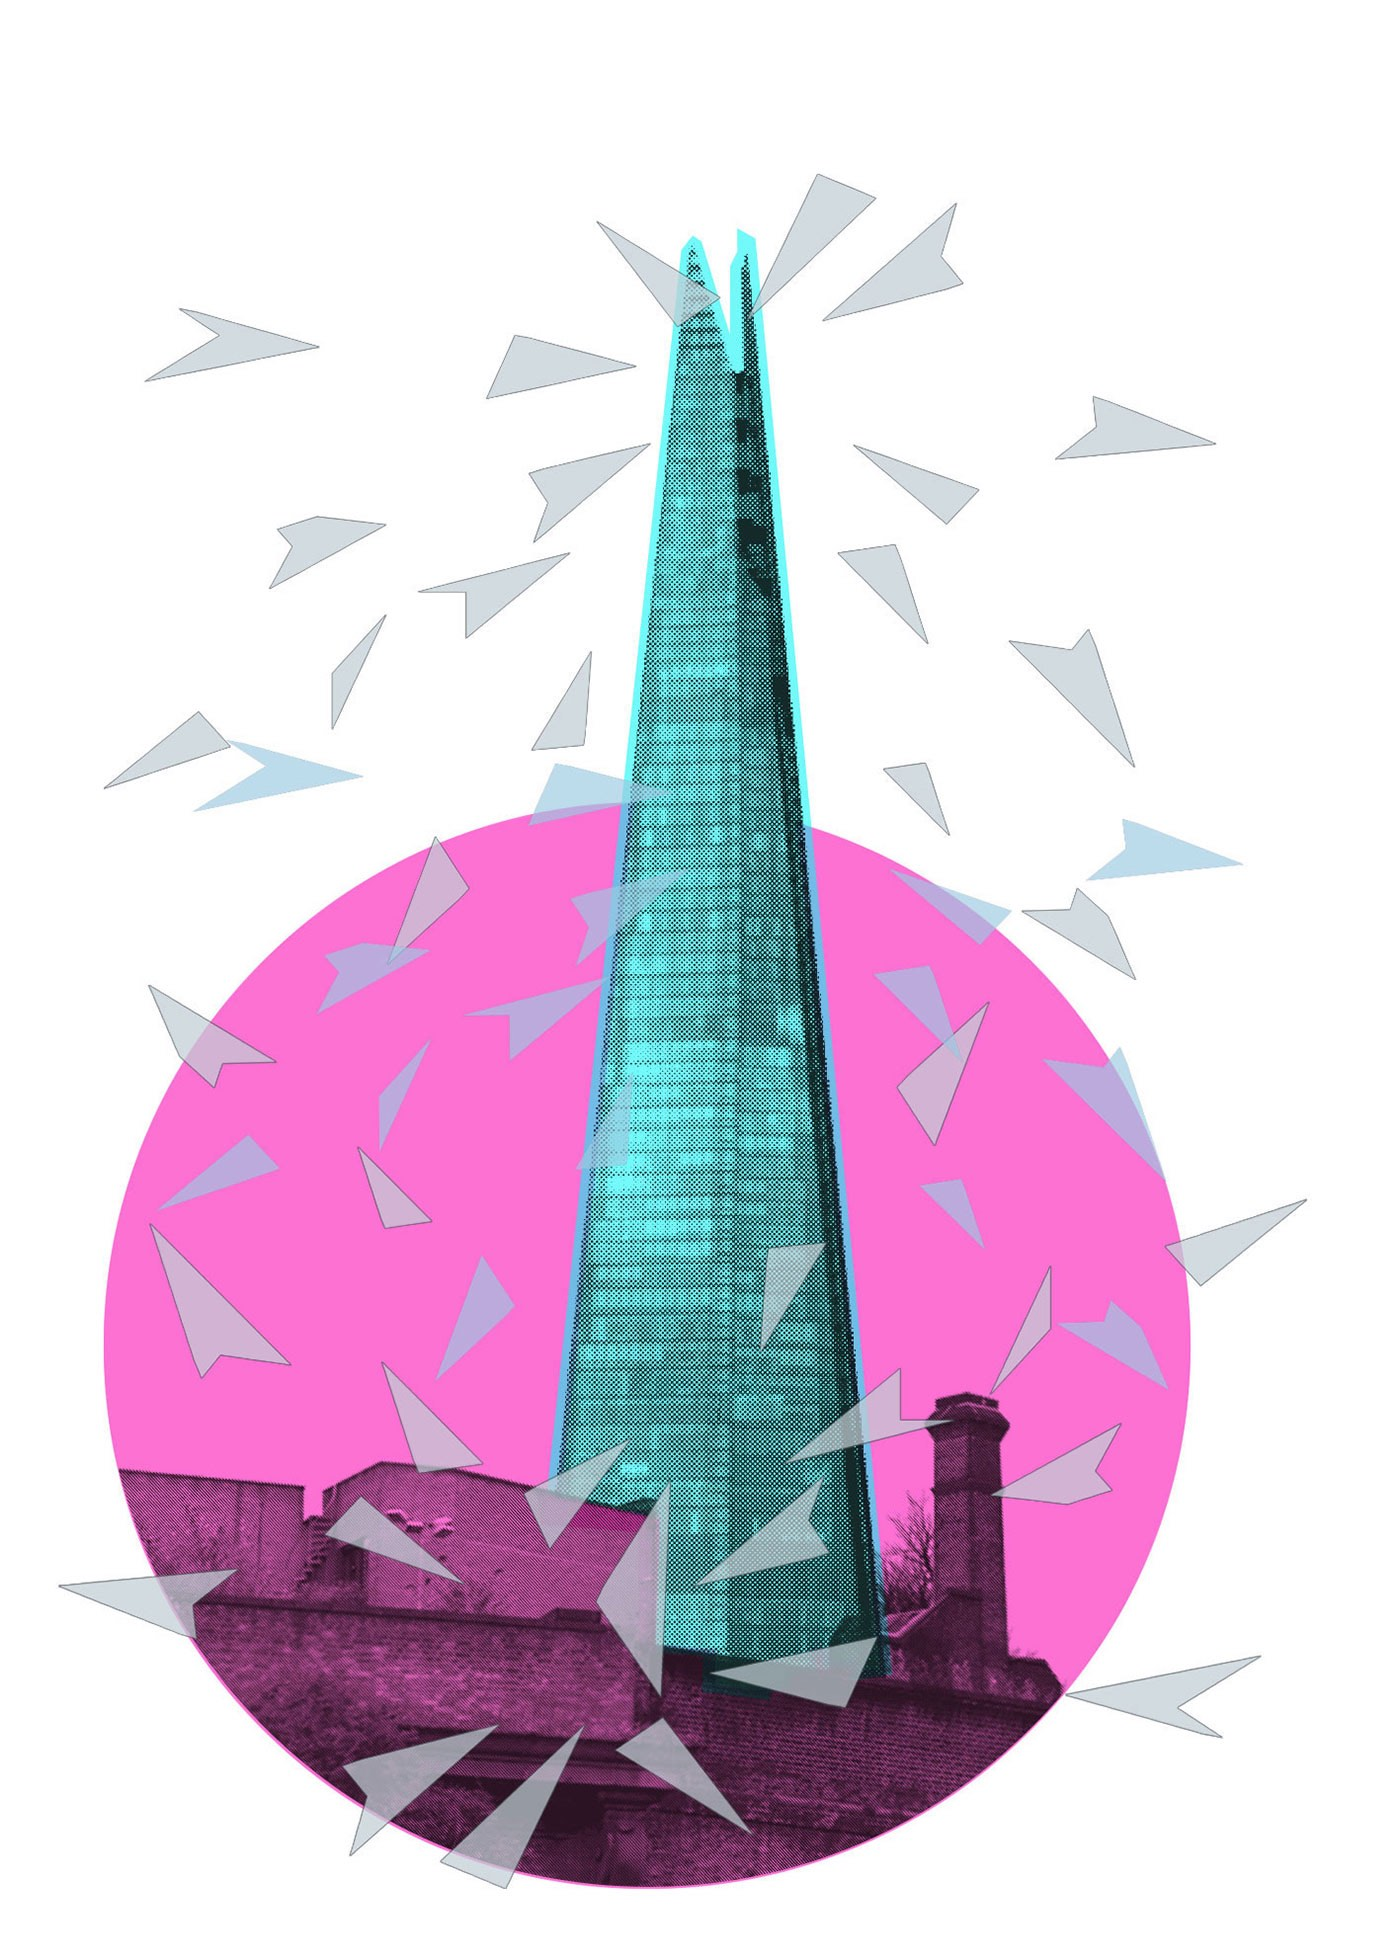 TIRSO_SANCHEZ_REIGNING GLASS (THE SHARD)  £70 Edition of 80 700x500mm.jpg.jpg